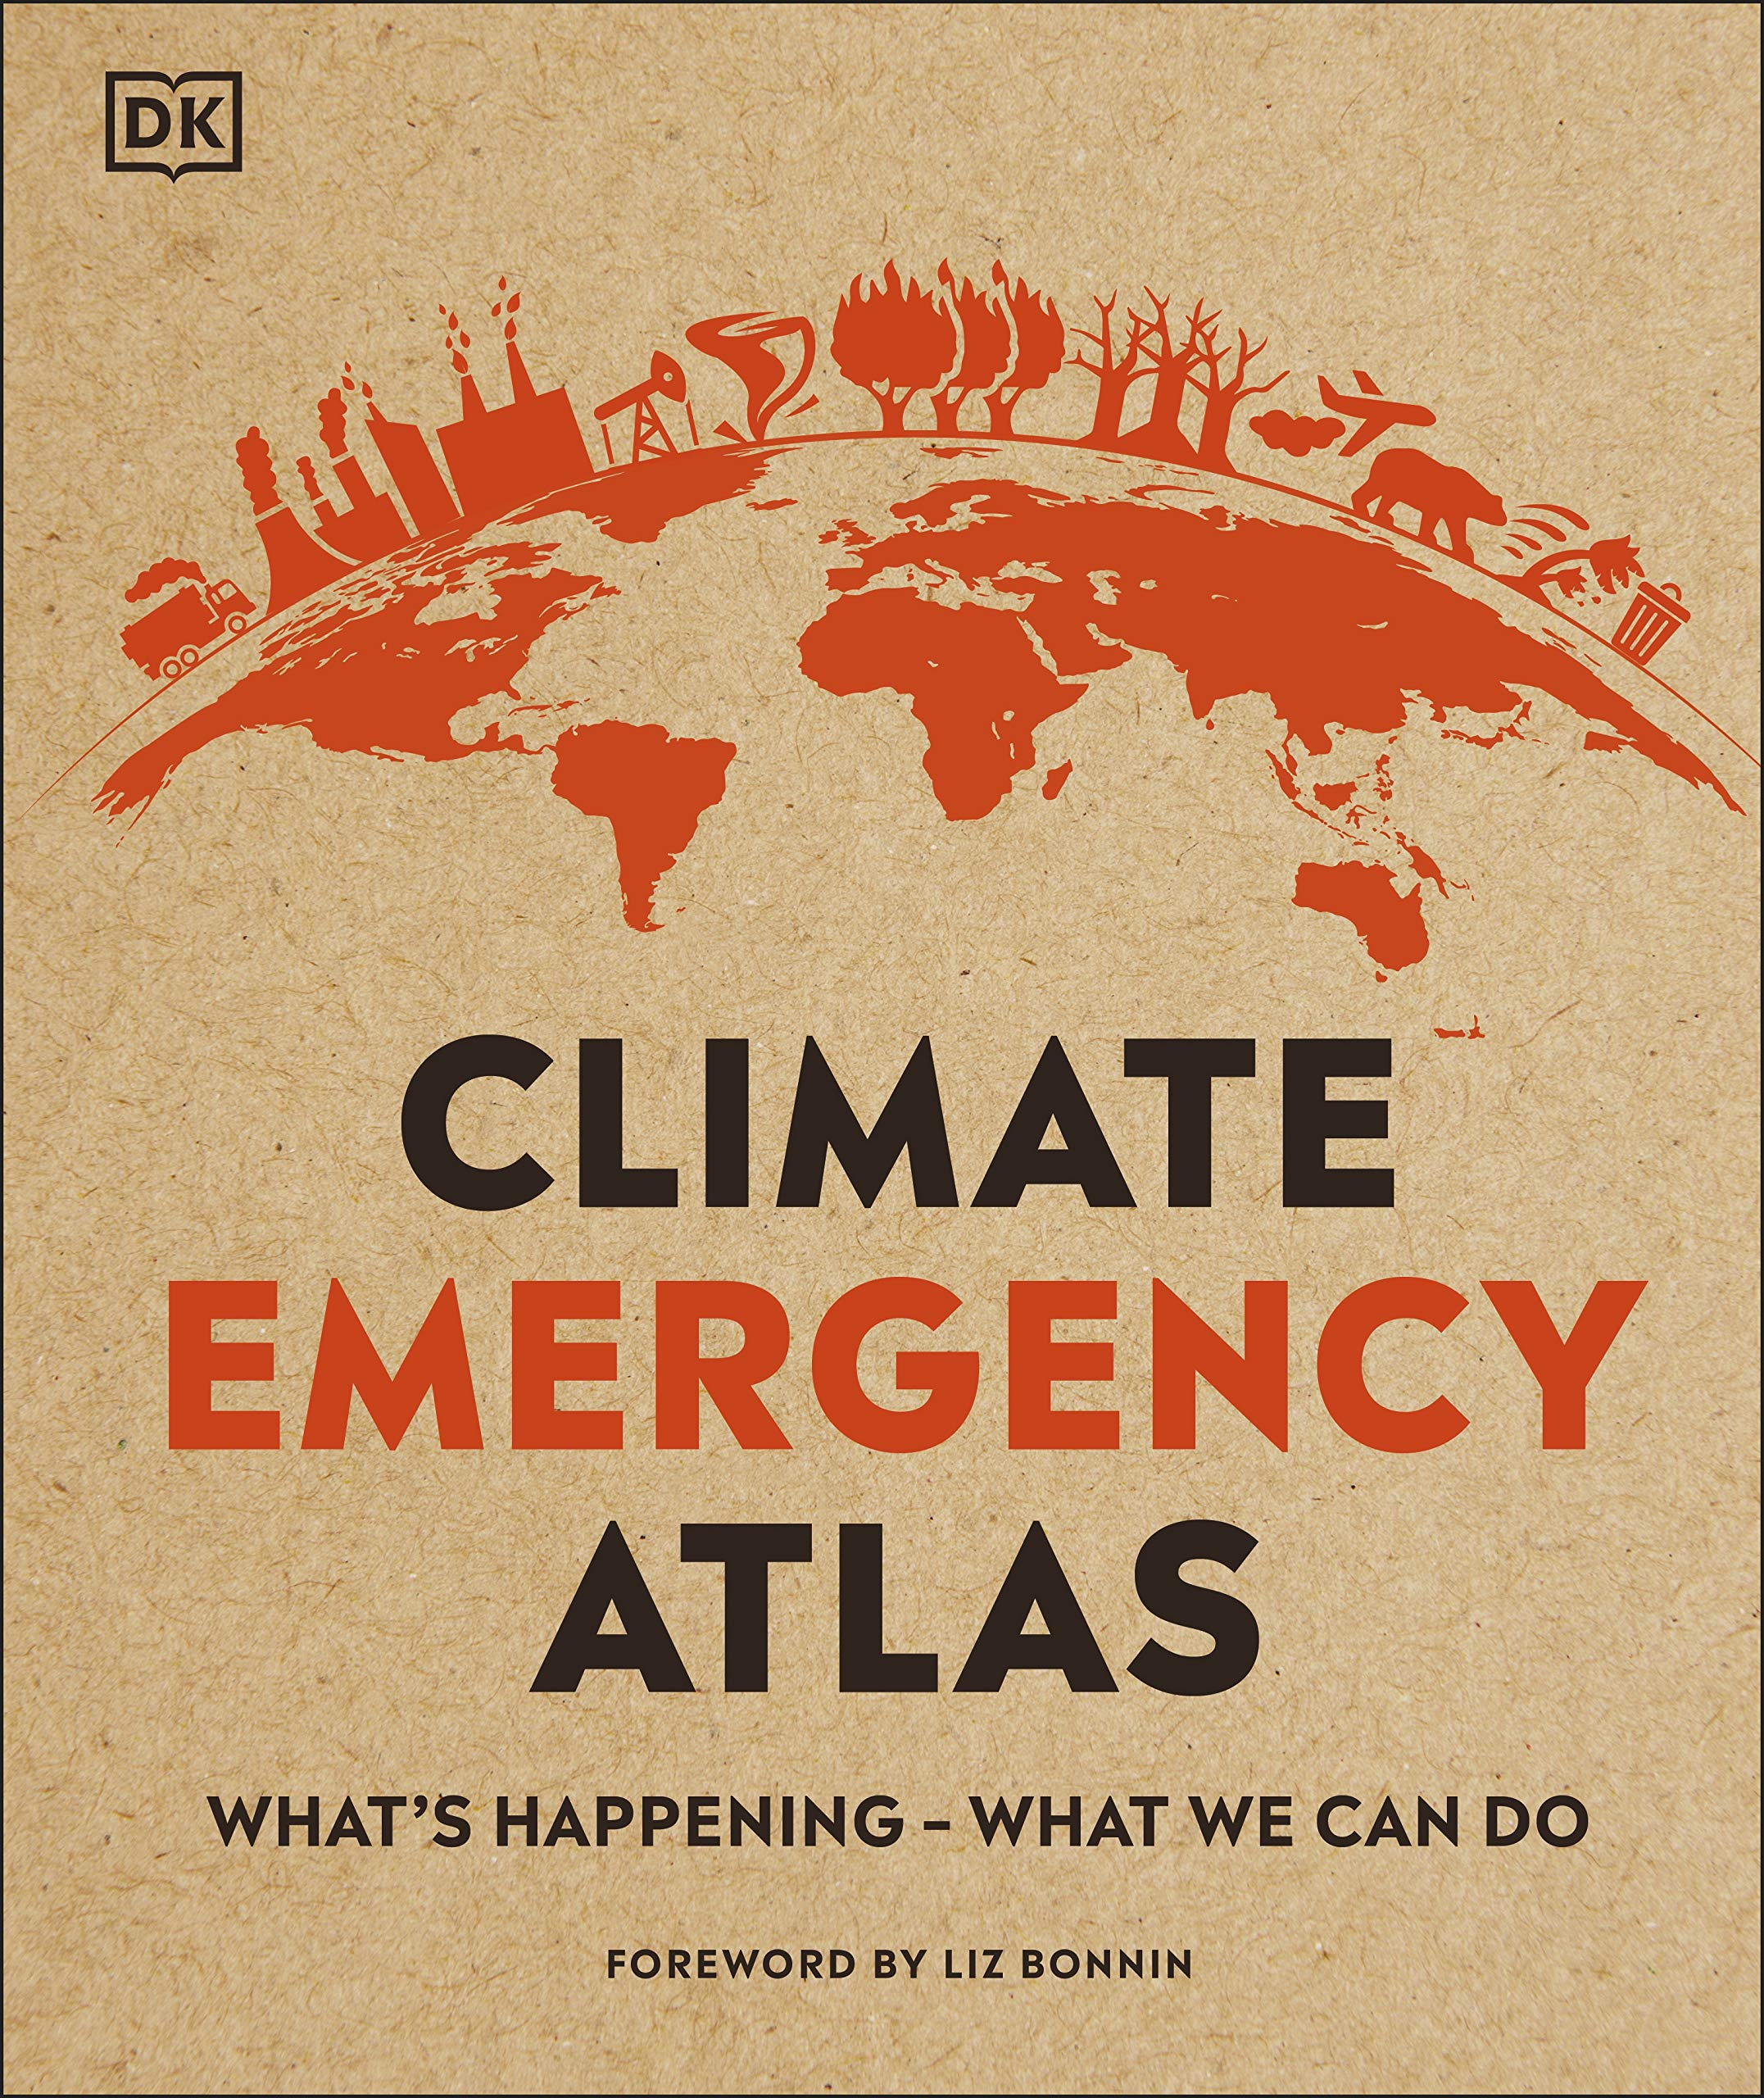 Climate Emergency Atlas: What's Happening - What We Can Do: Amazon.co.uk:  Dan Hooke, Liz Bonnin: 9780241446430: Books